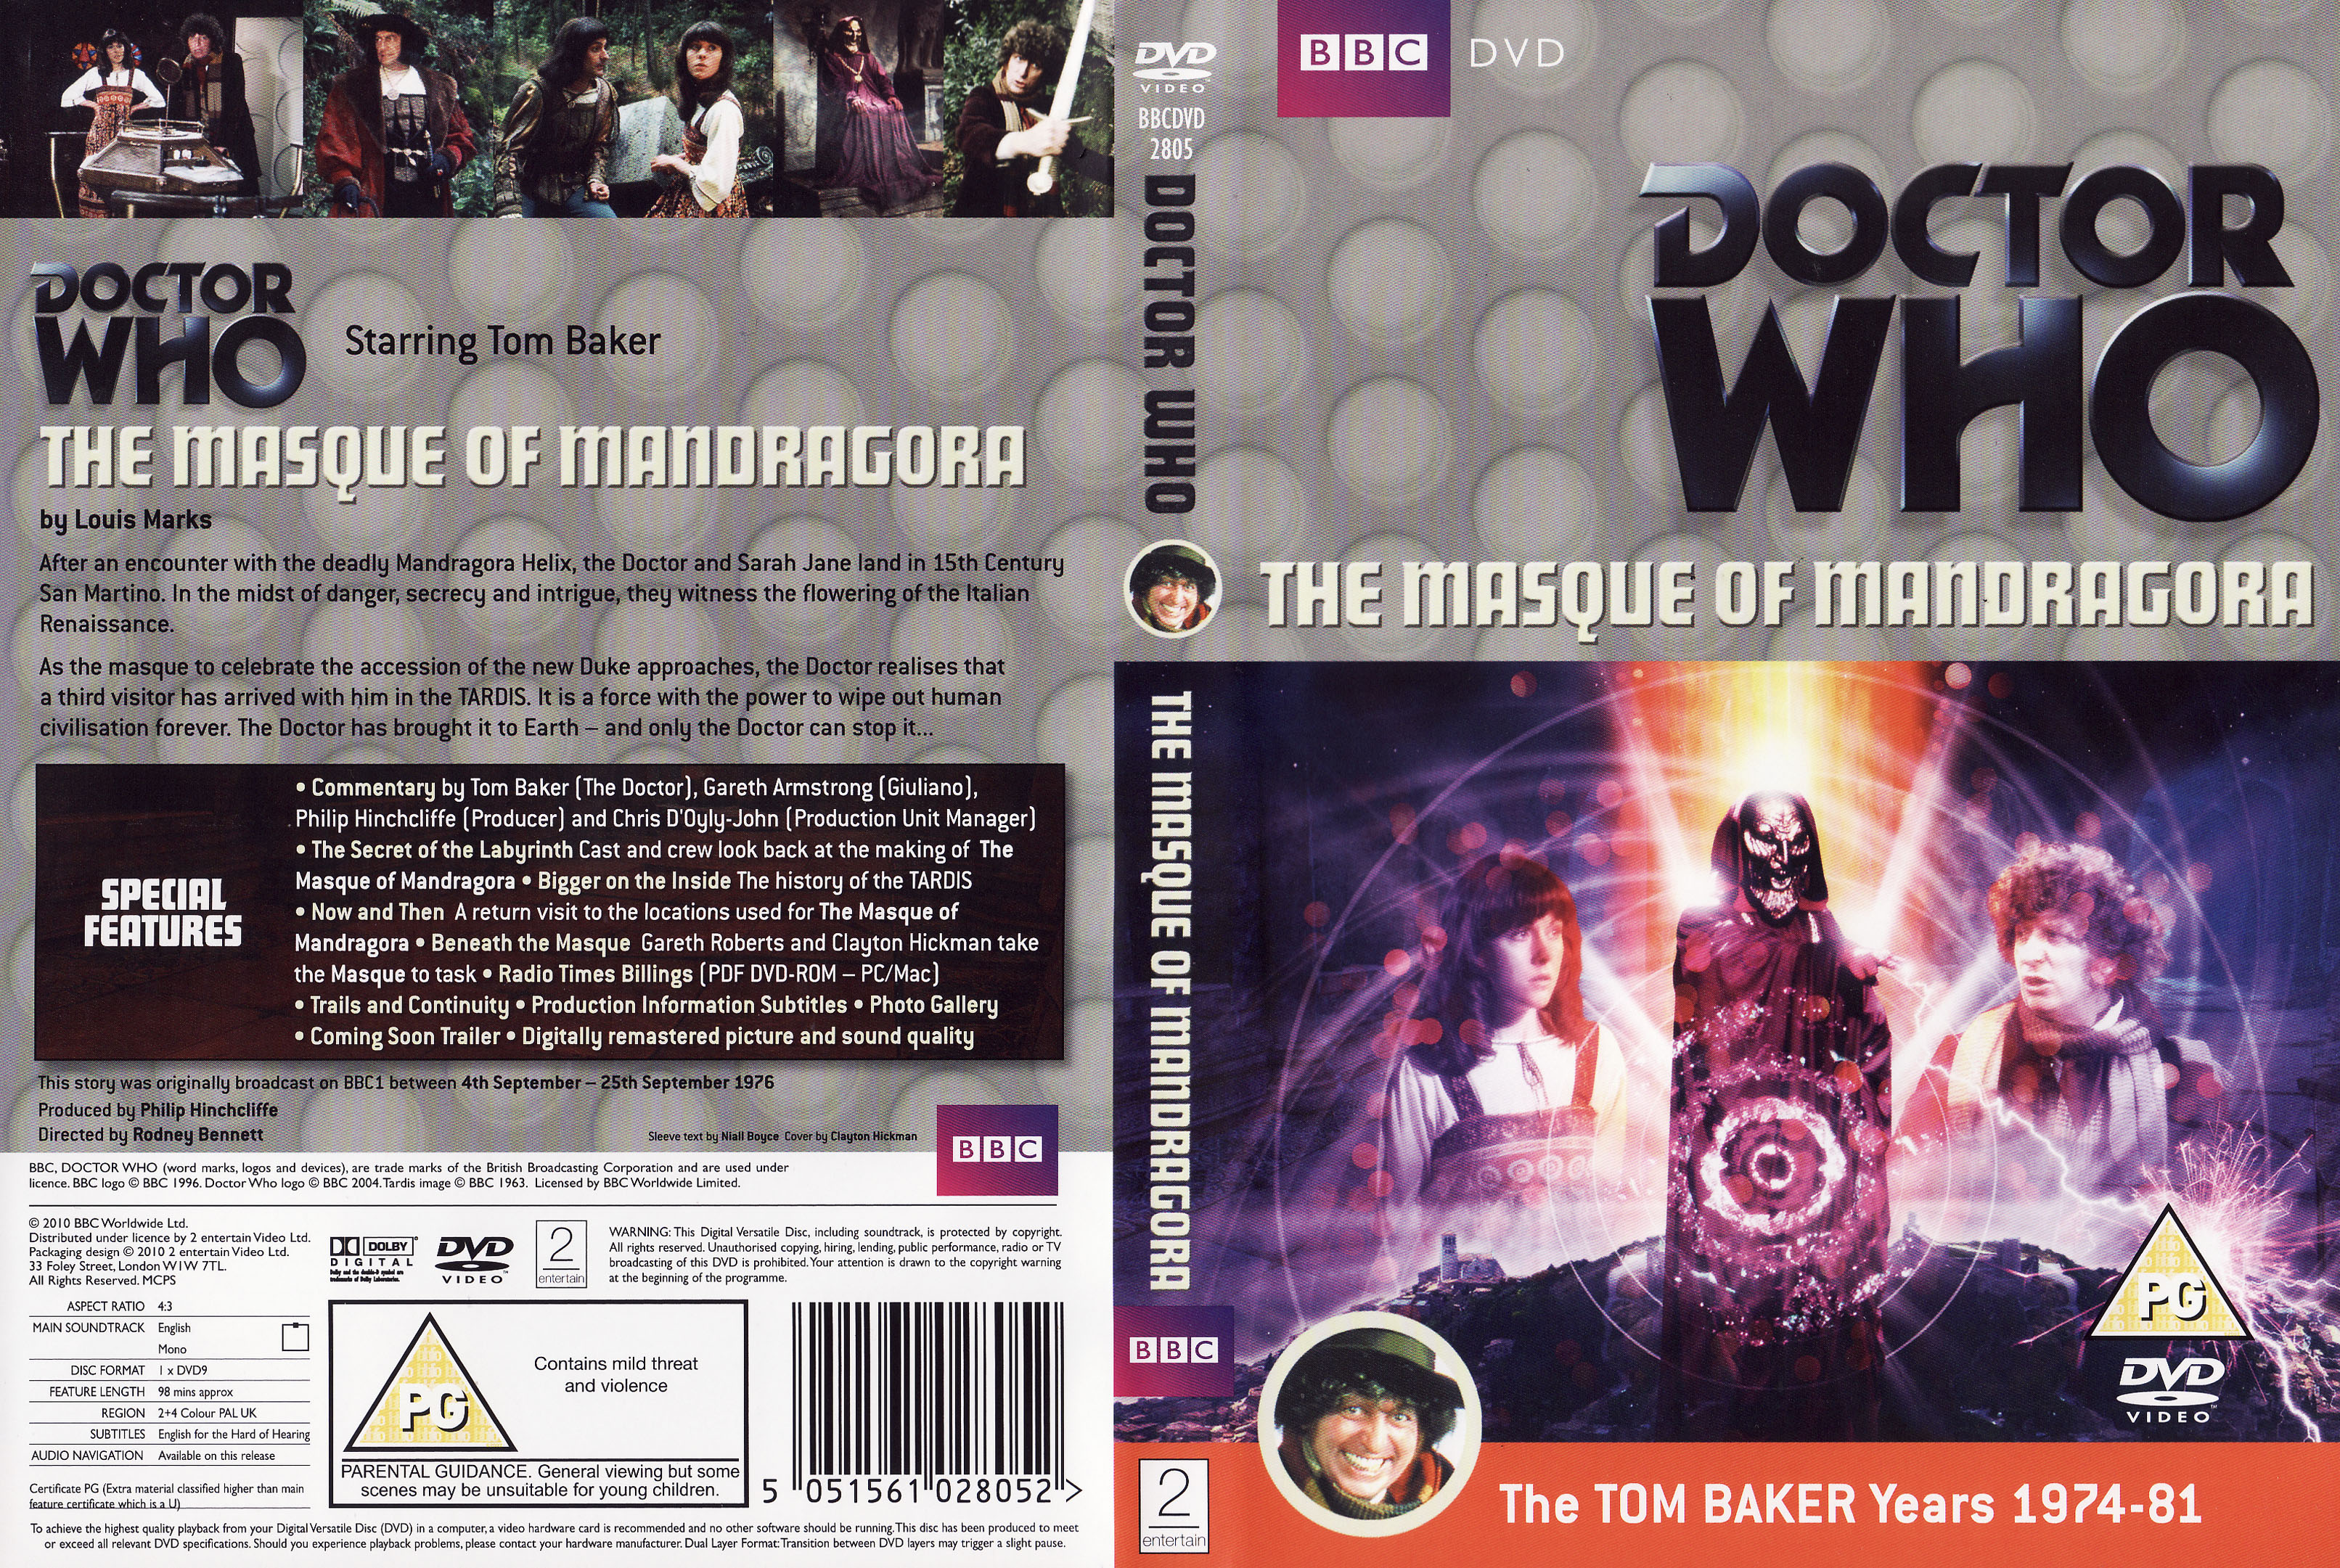 The Masque of Mandragora DVD